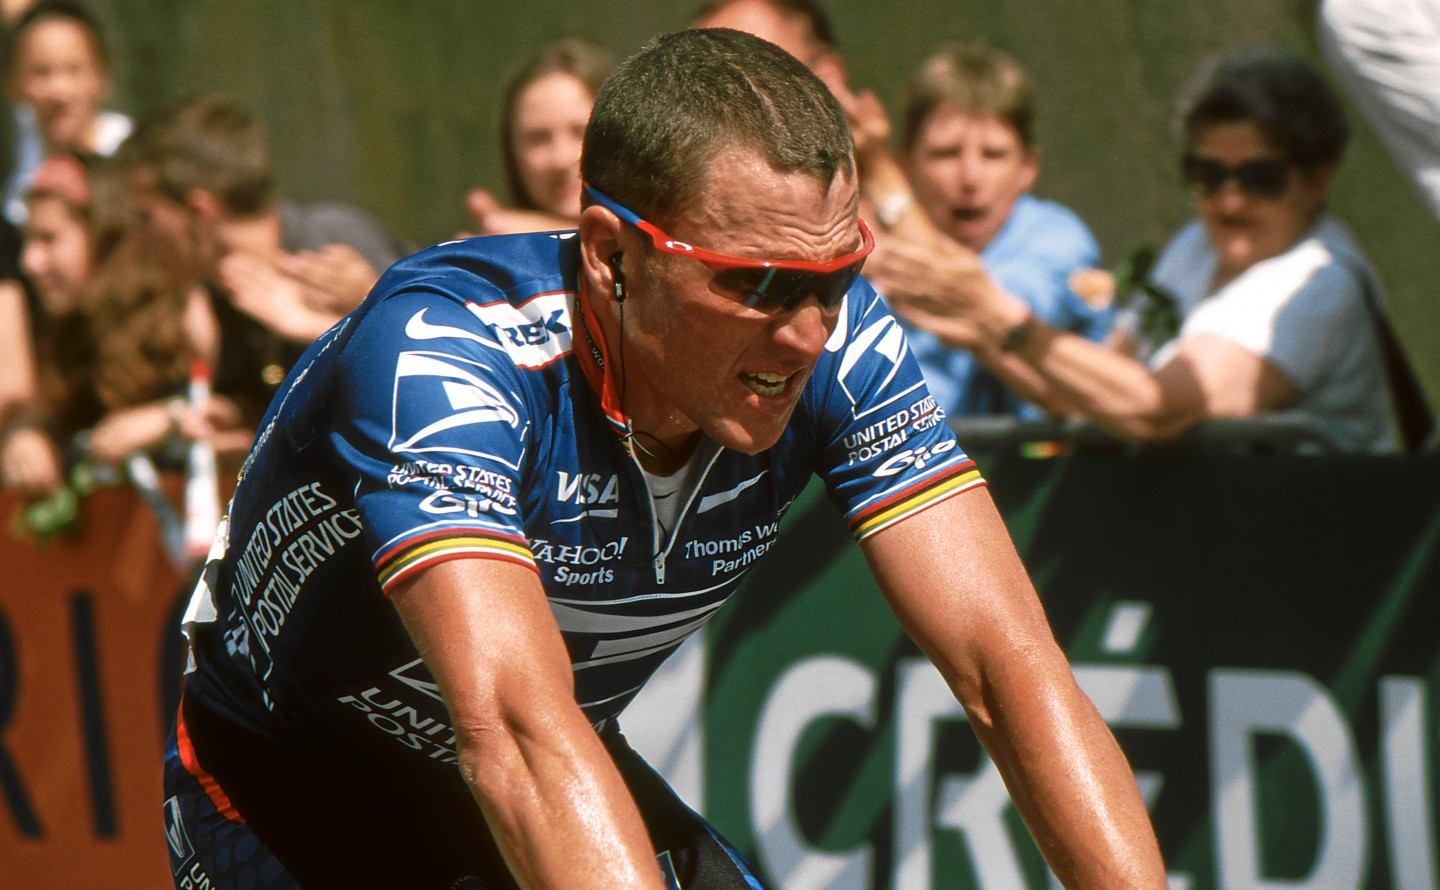 lance armstrong the long road back is an essay about role models lance armstrong finishing 3rd in segravete taking over the yellow jersey at grand prix midi